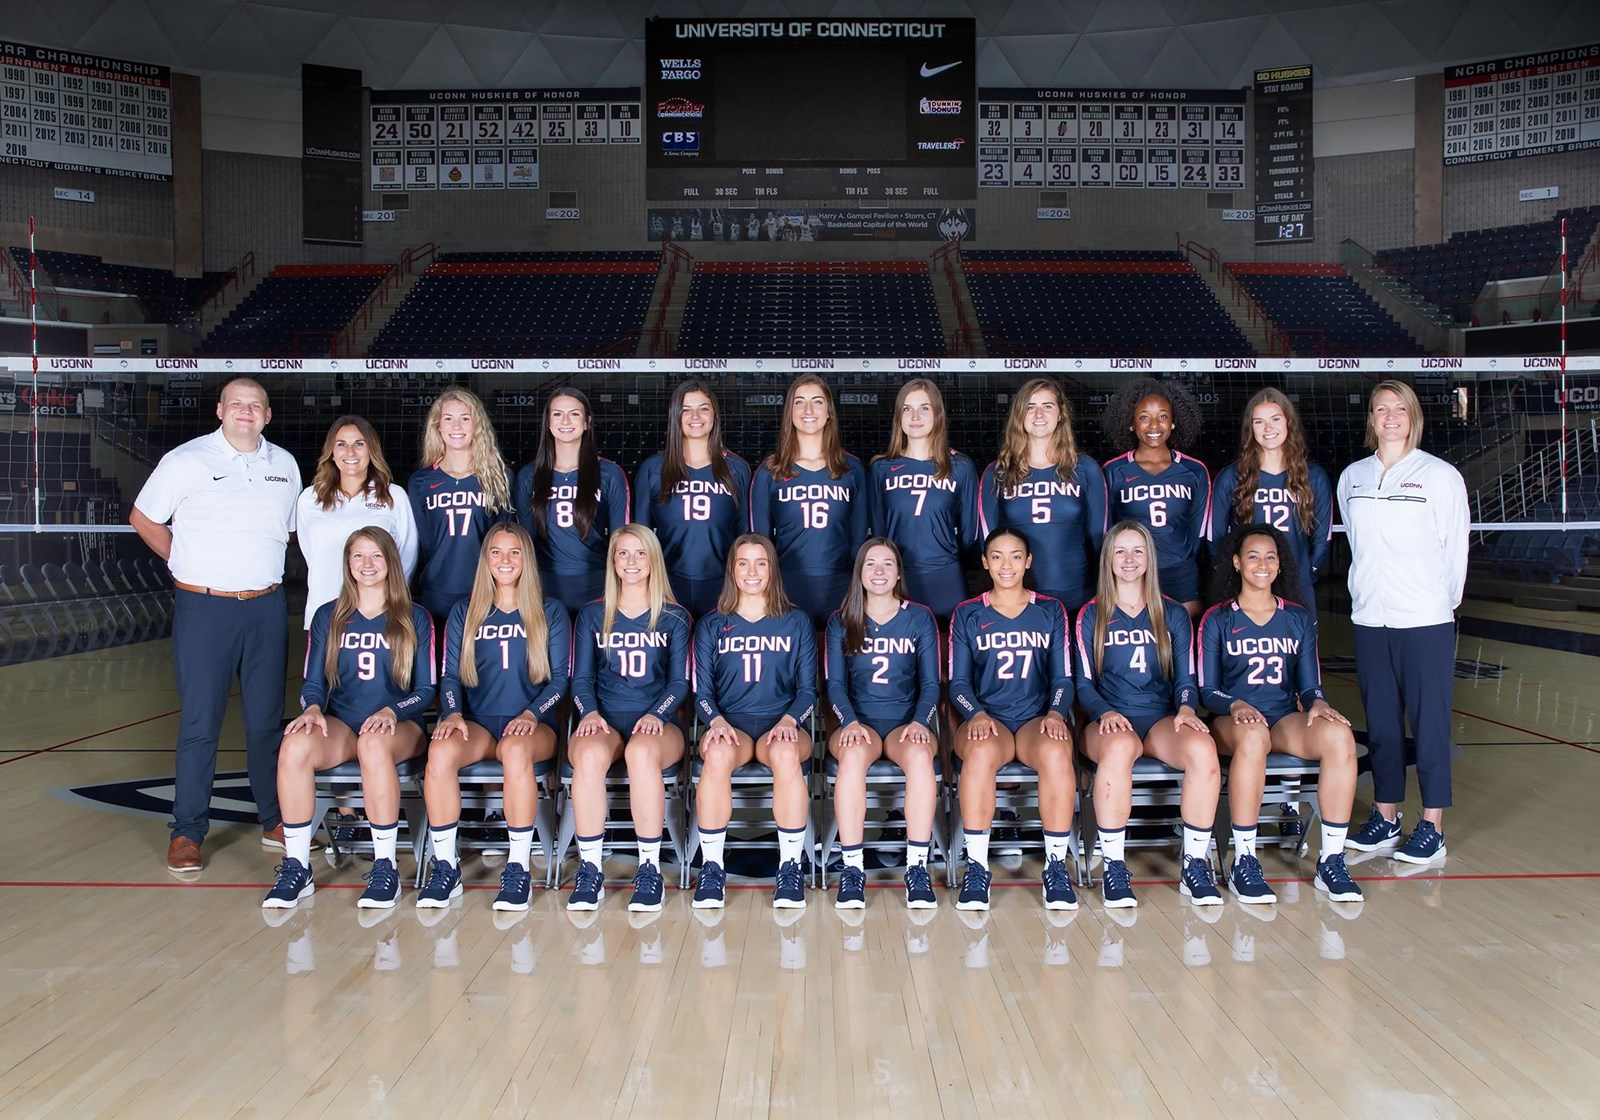 2019 Women S Volleyball Roster University Of Connecticut Athletics